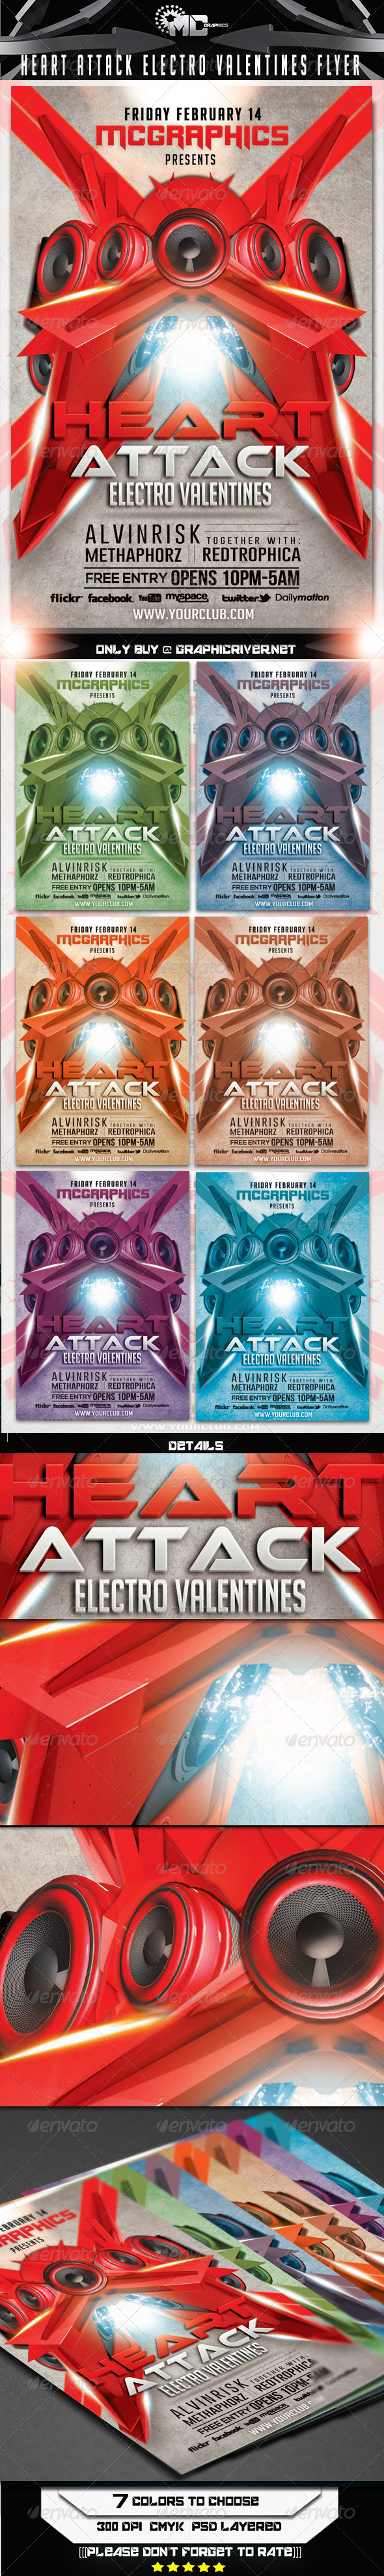 GraphicRiver Heart Attack Electro Valentines Flyer Template 6685421